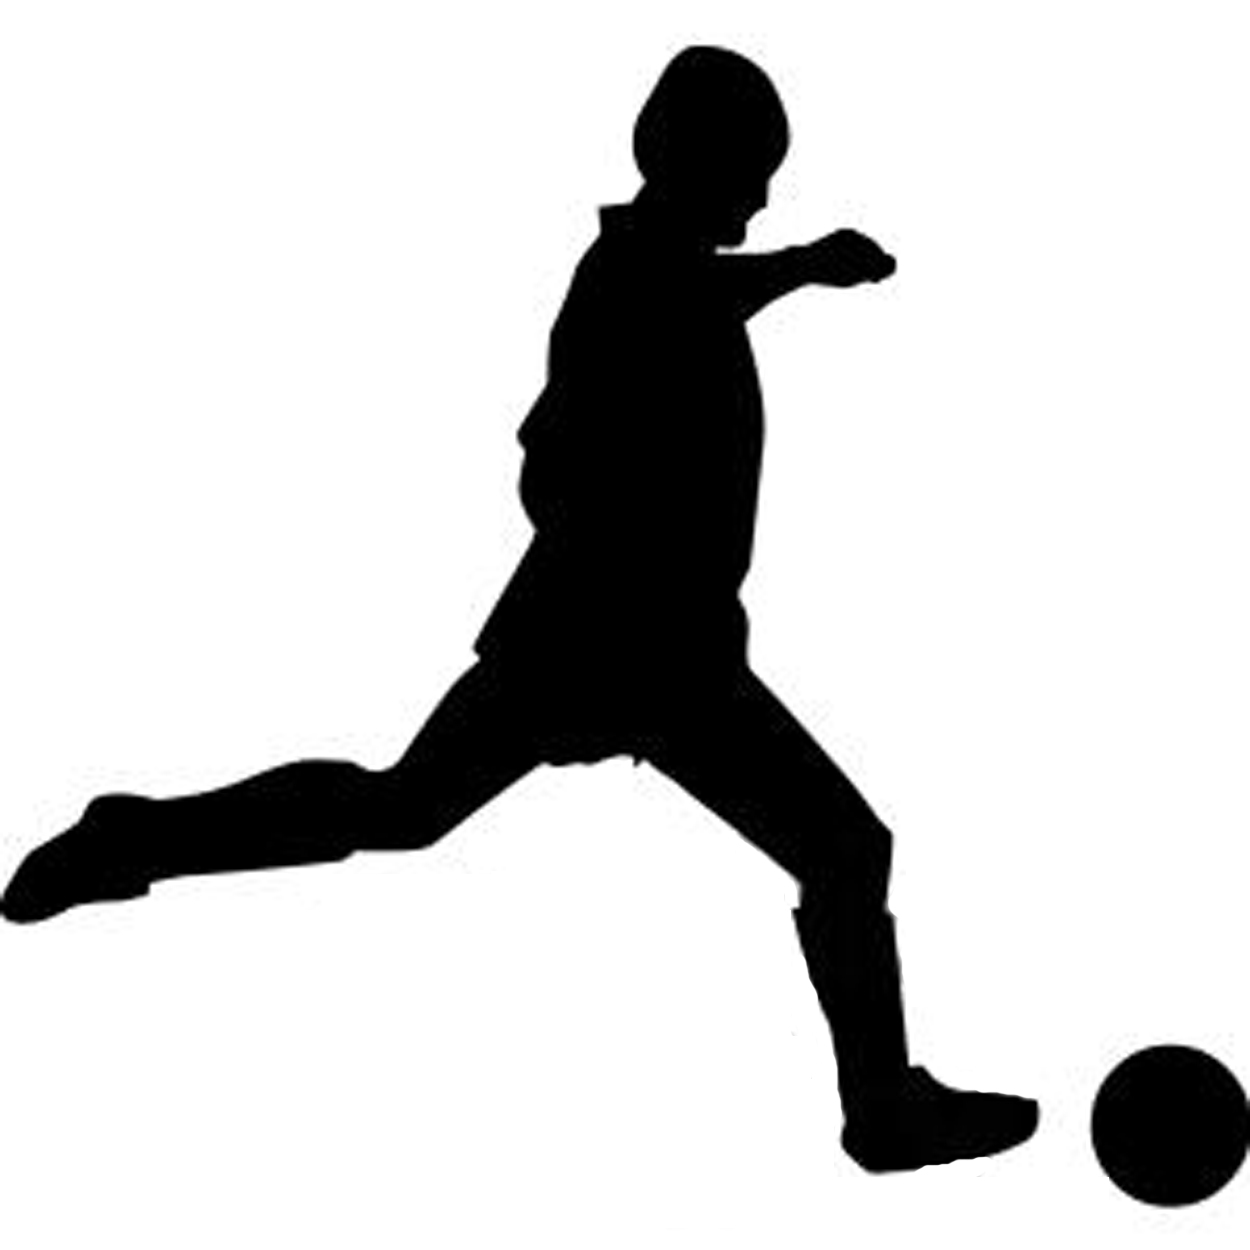 soccer player silhouette soccer player silhouette clipart panda free clipart images player soccer silhouette